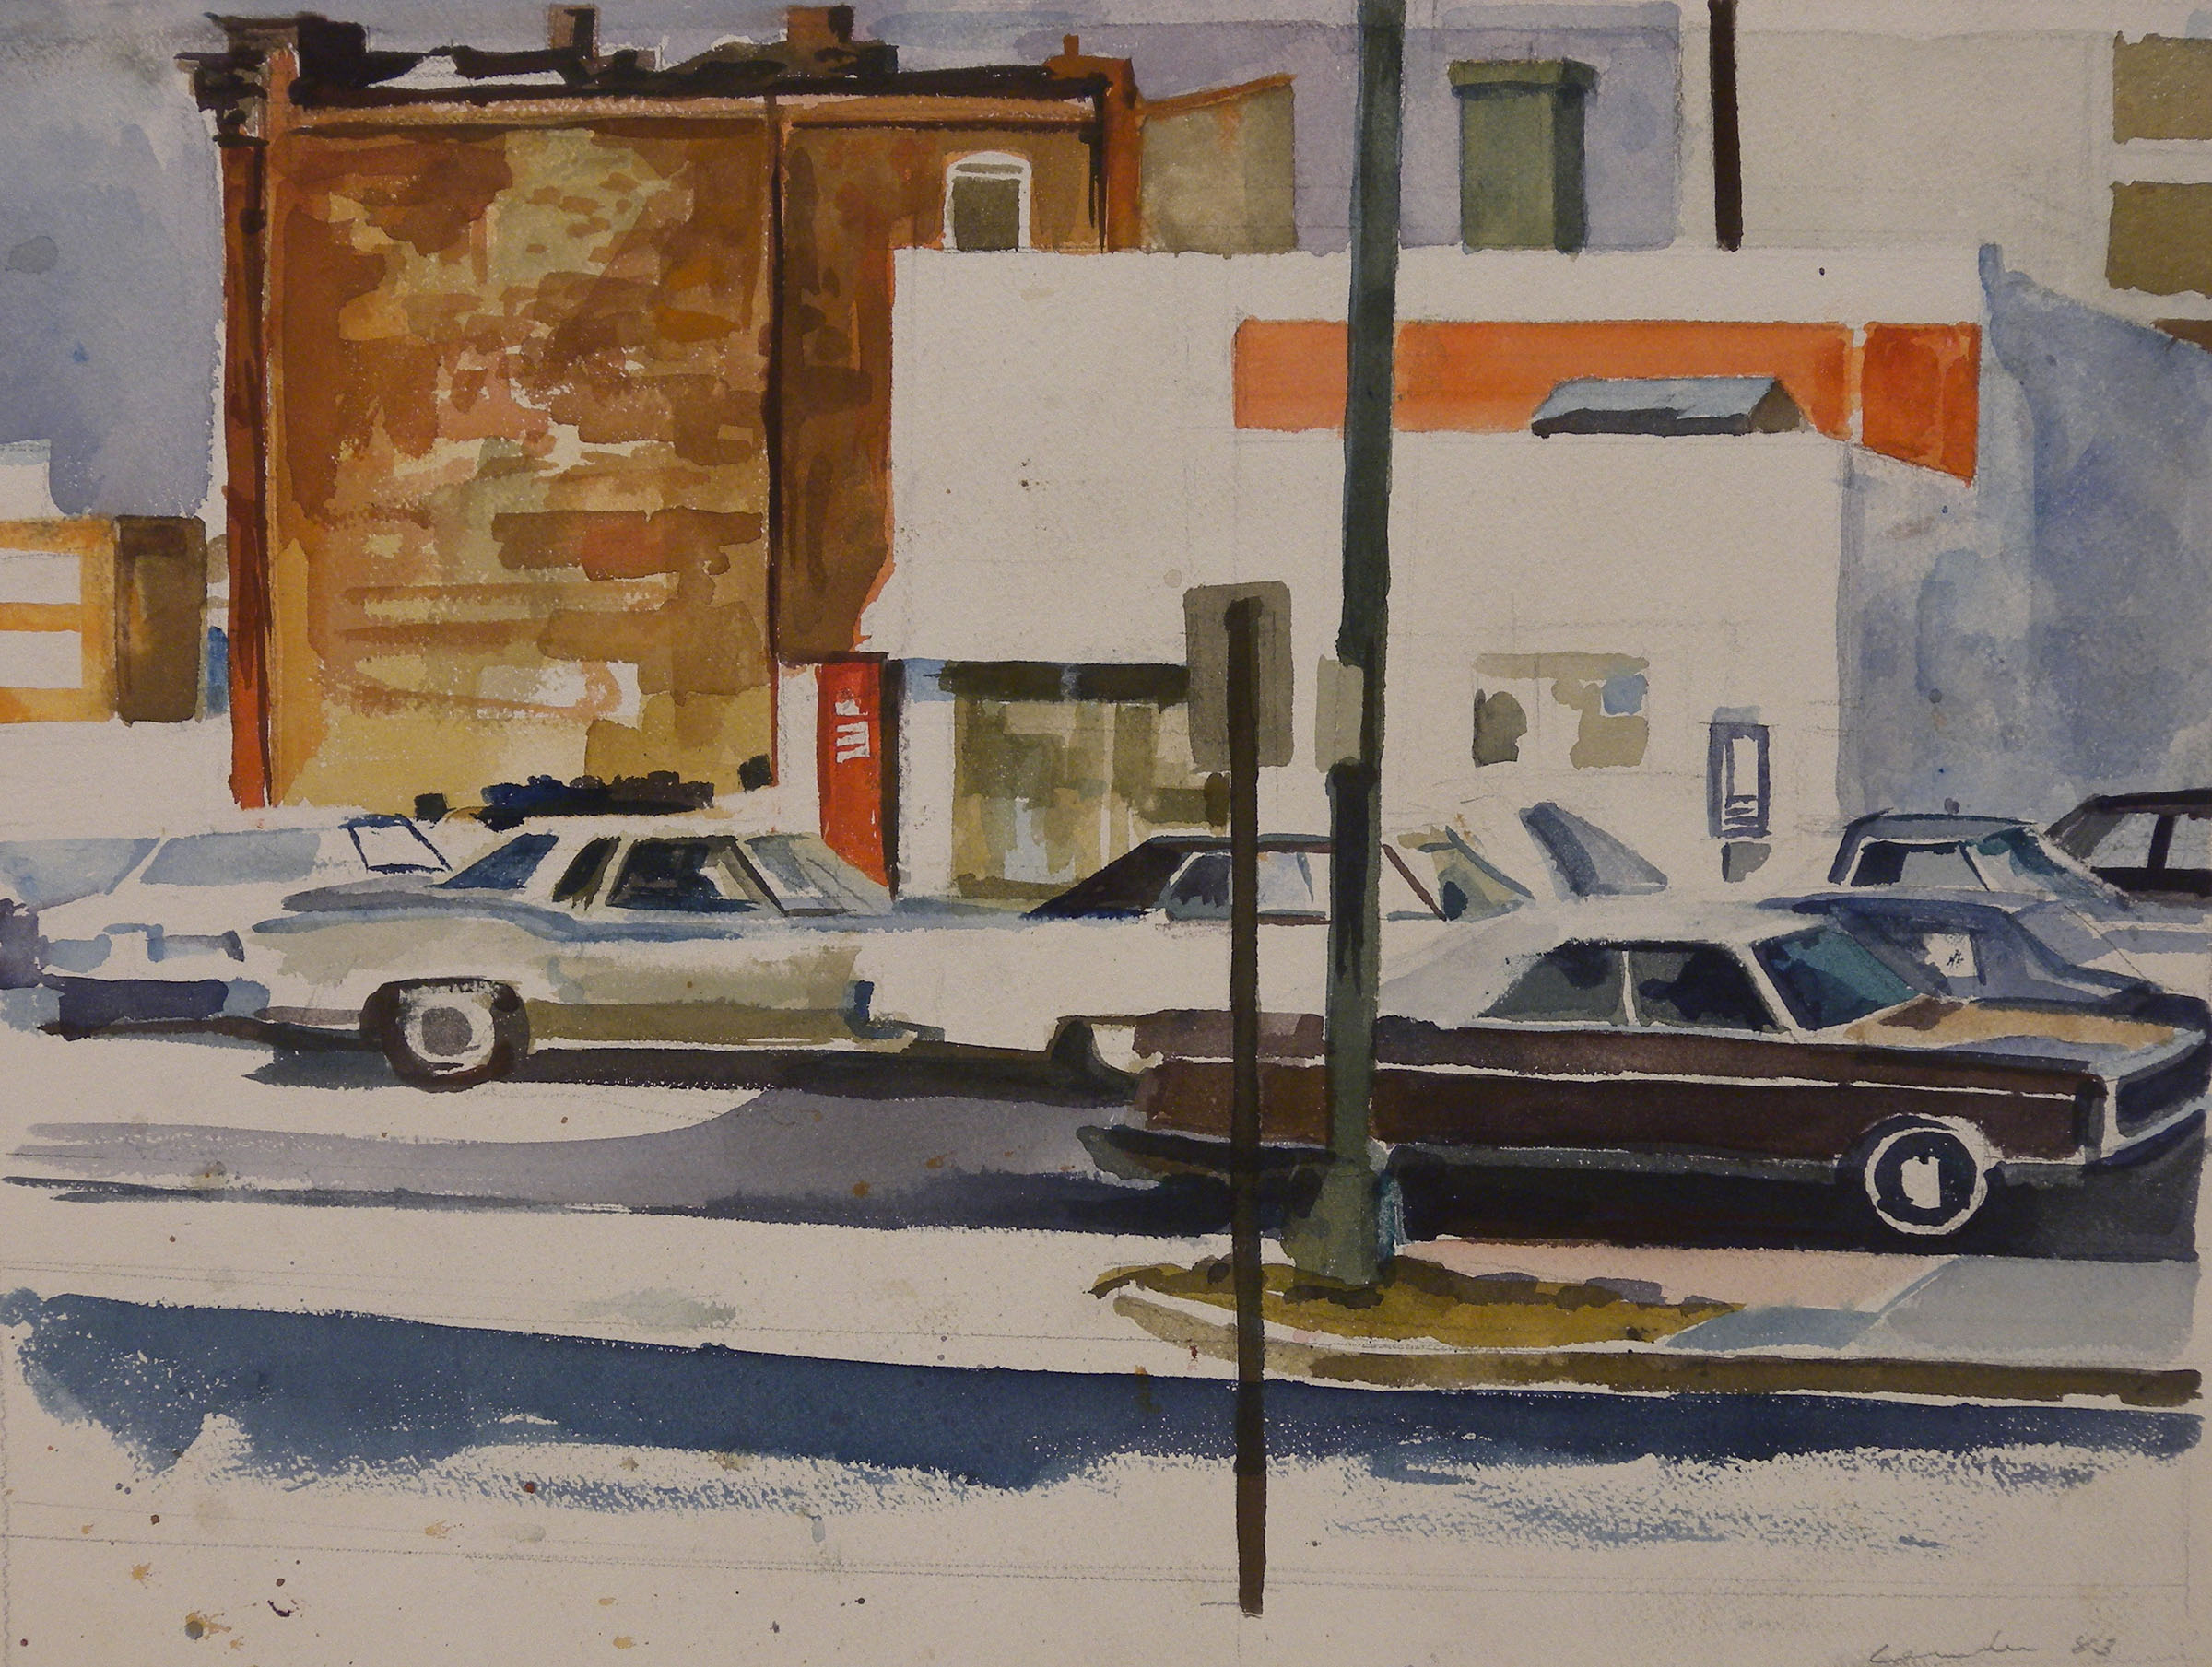 "Third Street Exxon, watercolor on paper, 12"" x 16"", 1983"